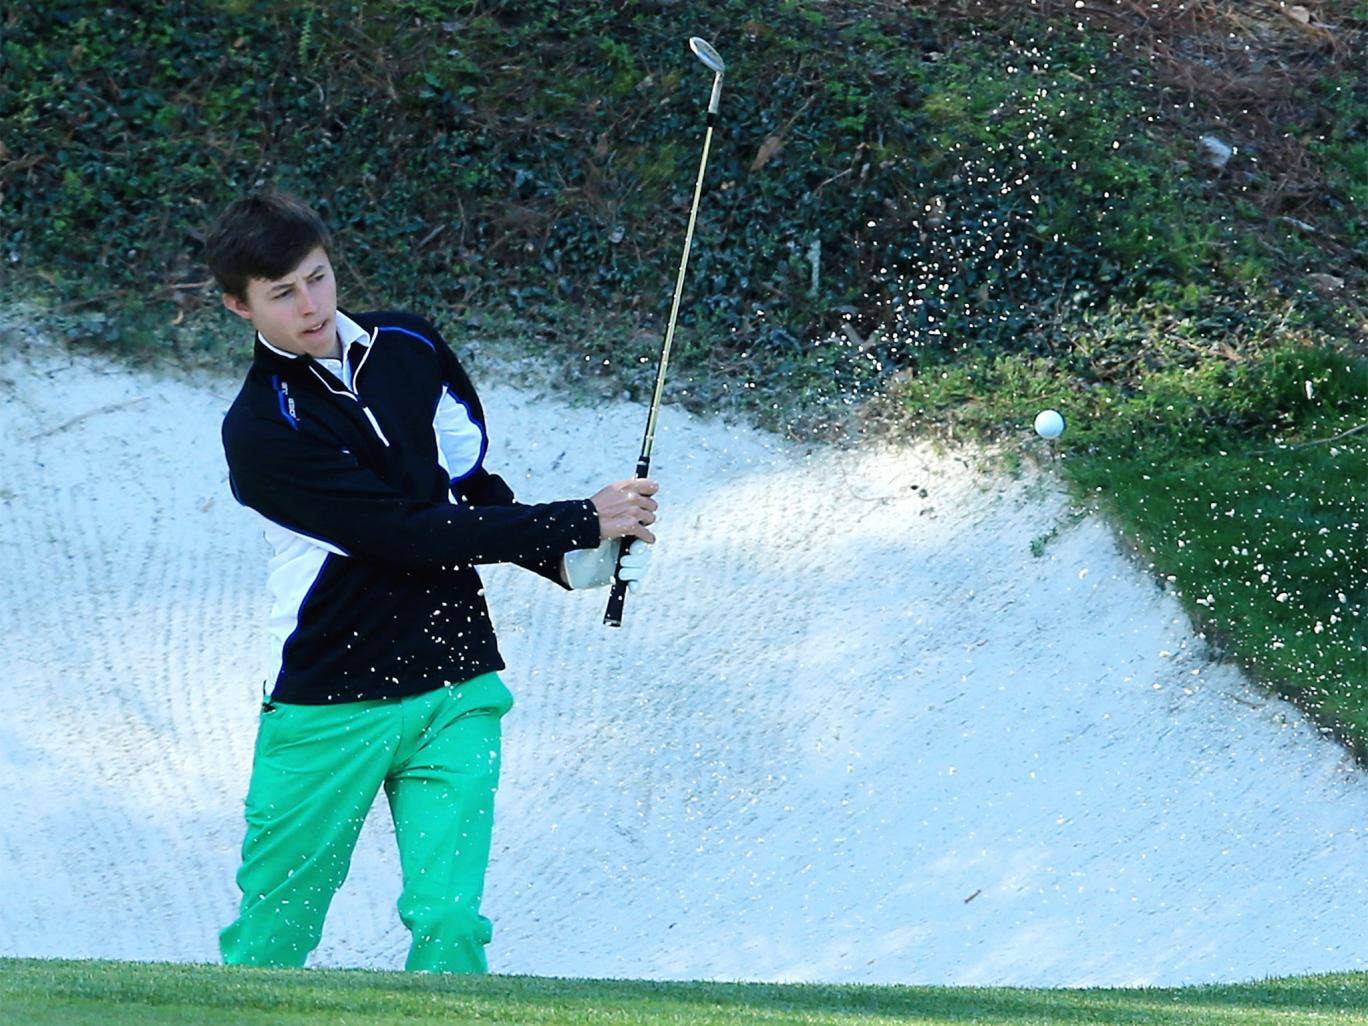 Matthew Fitzpatrick remains unawed by this week's event